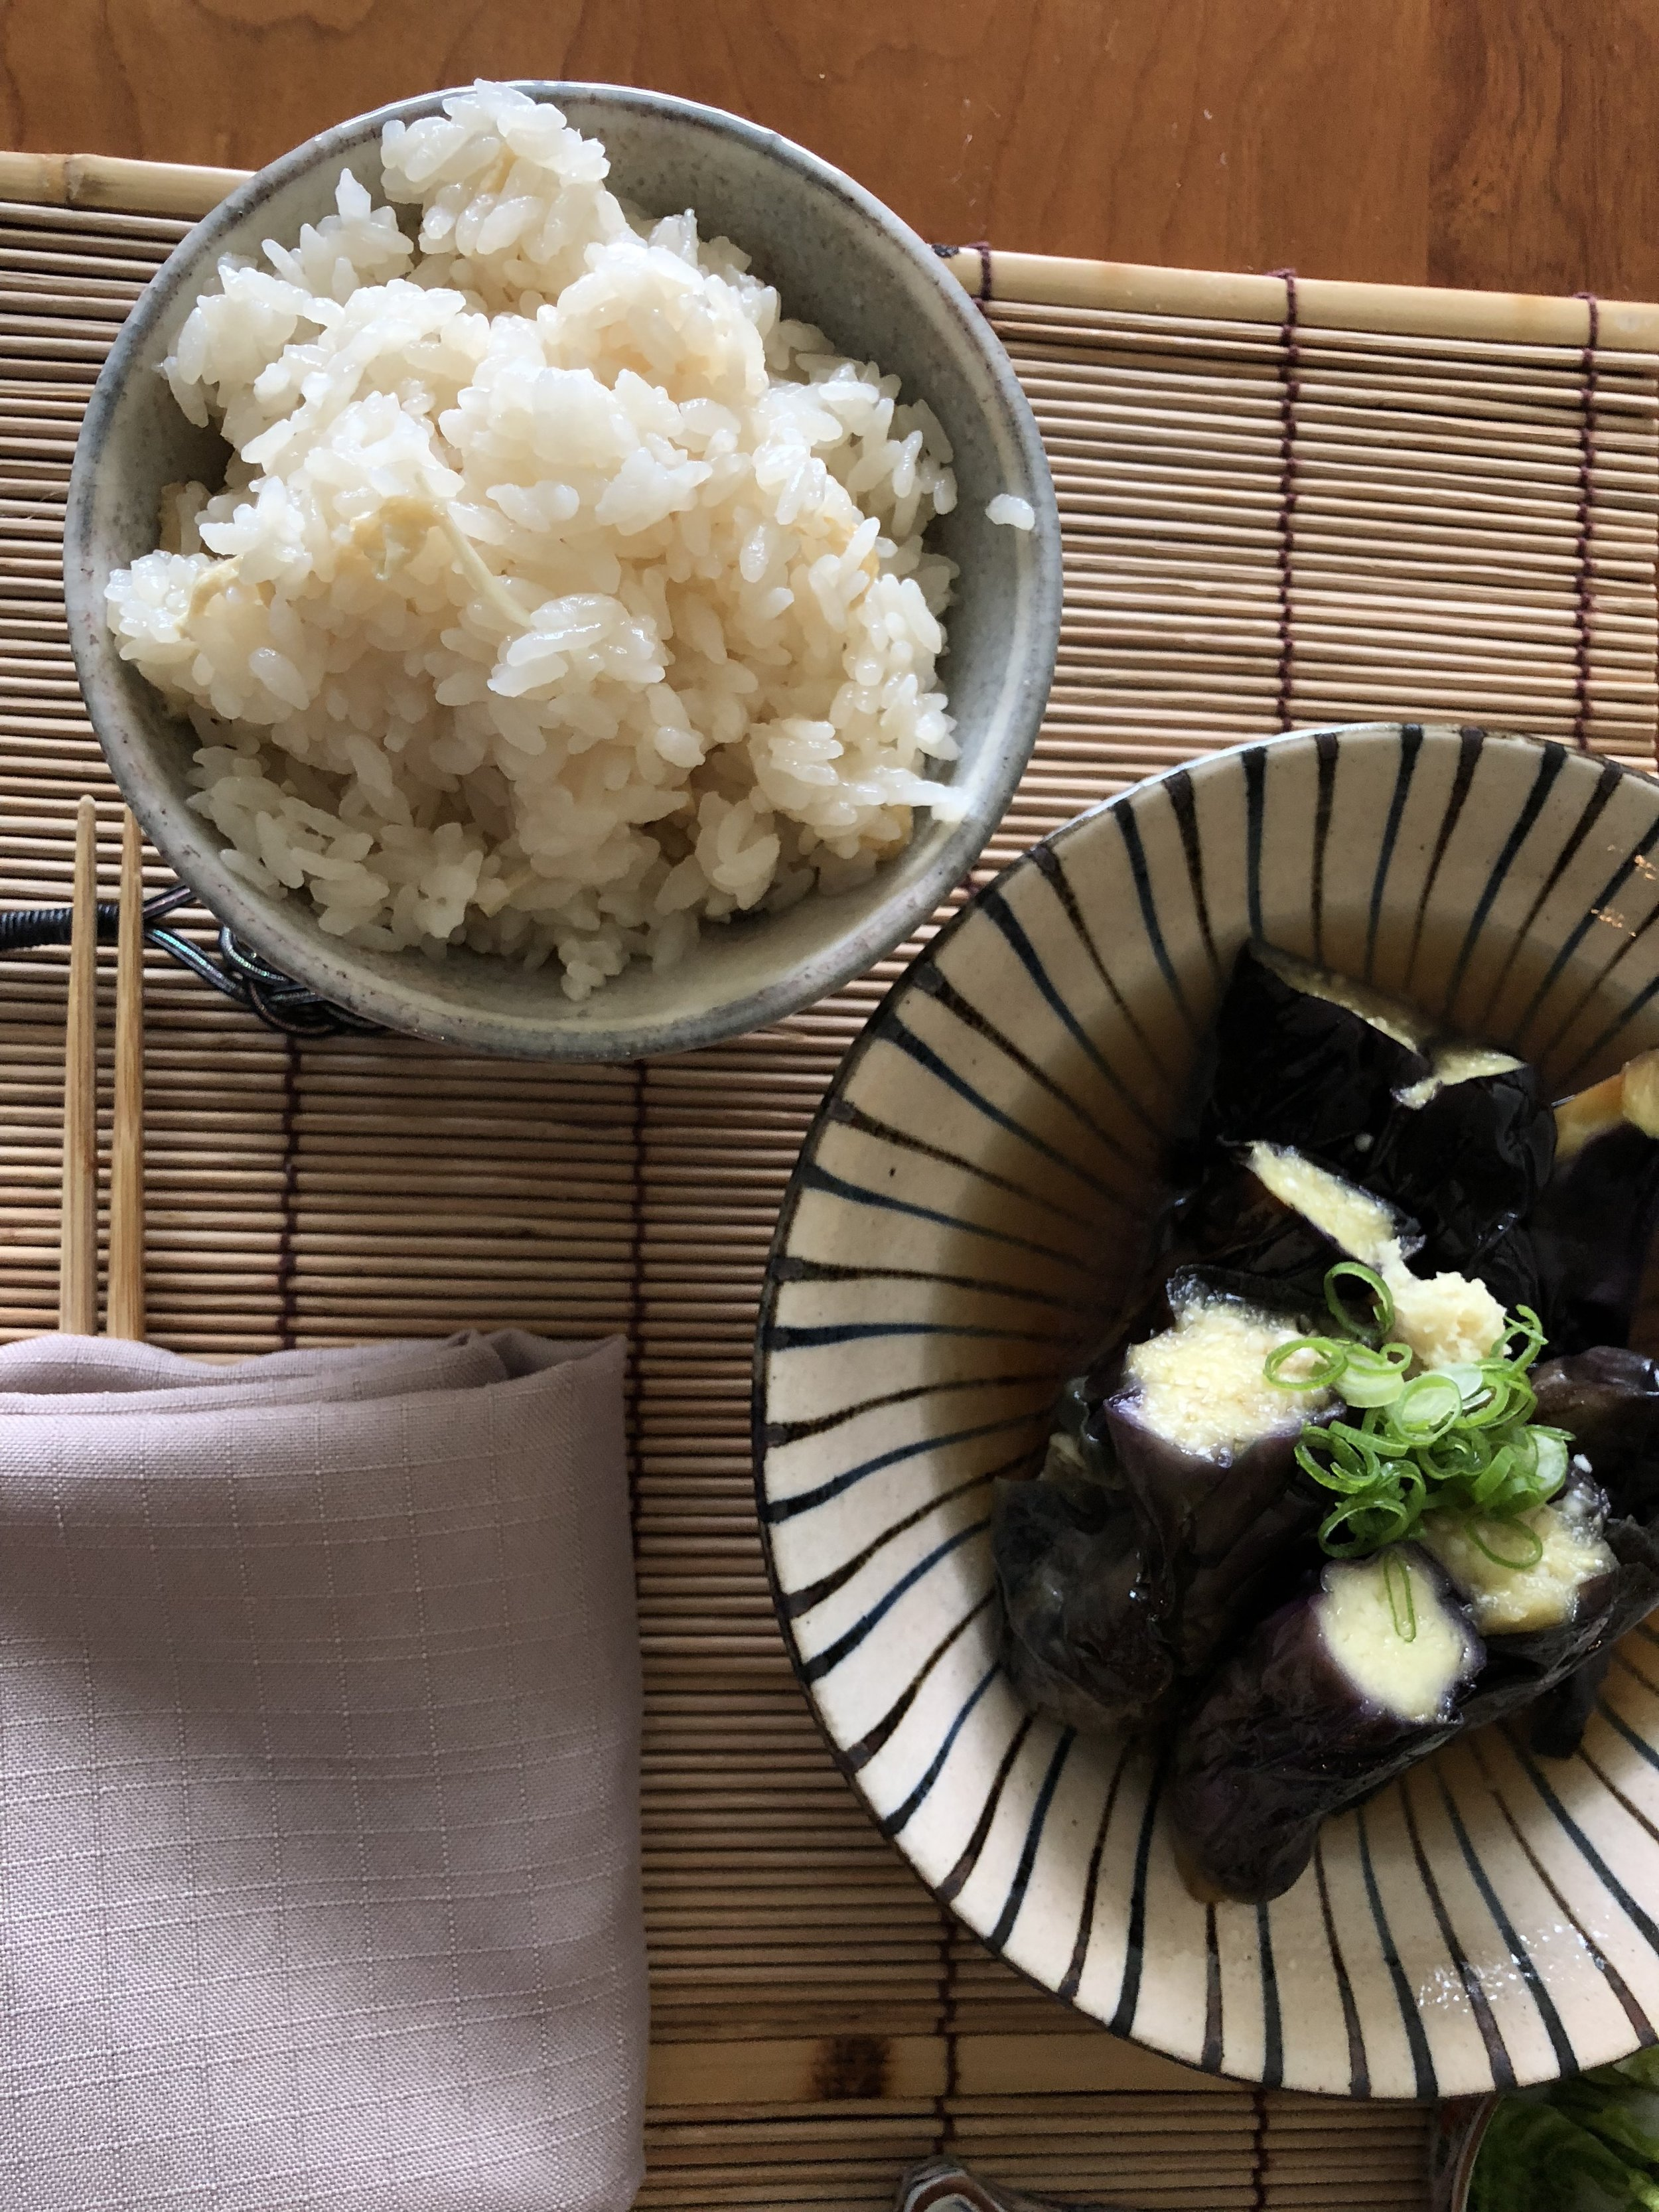 Rice and eggplant dishes